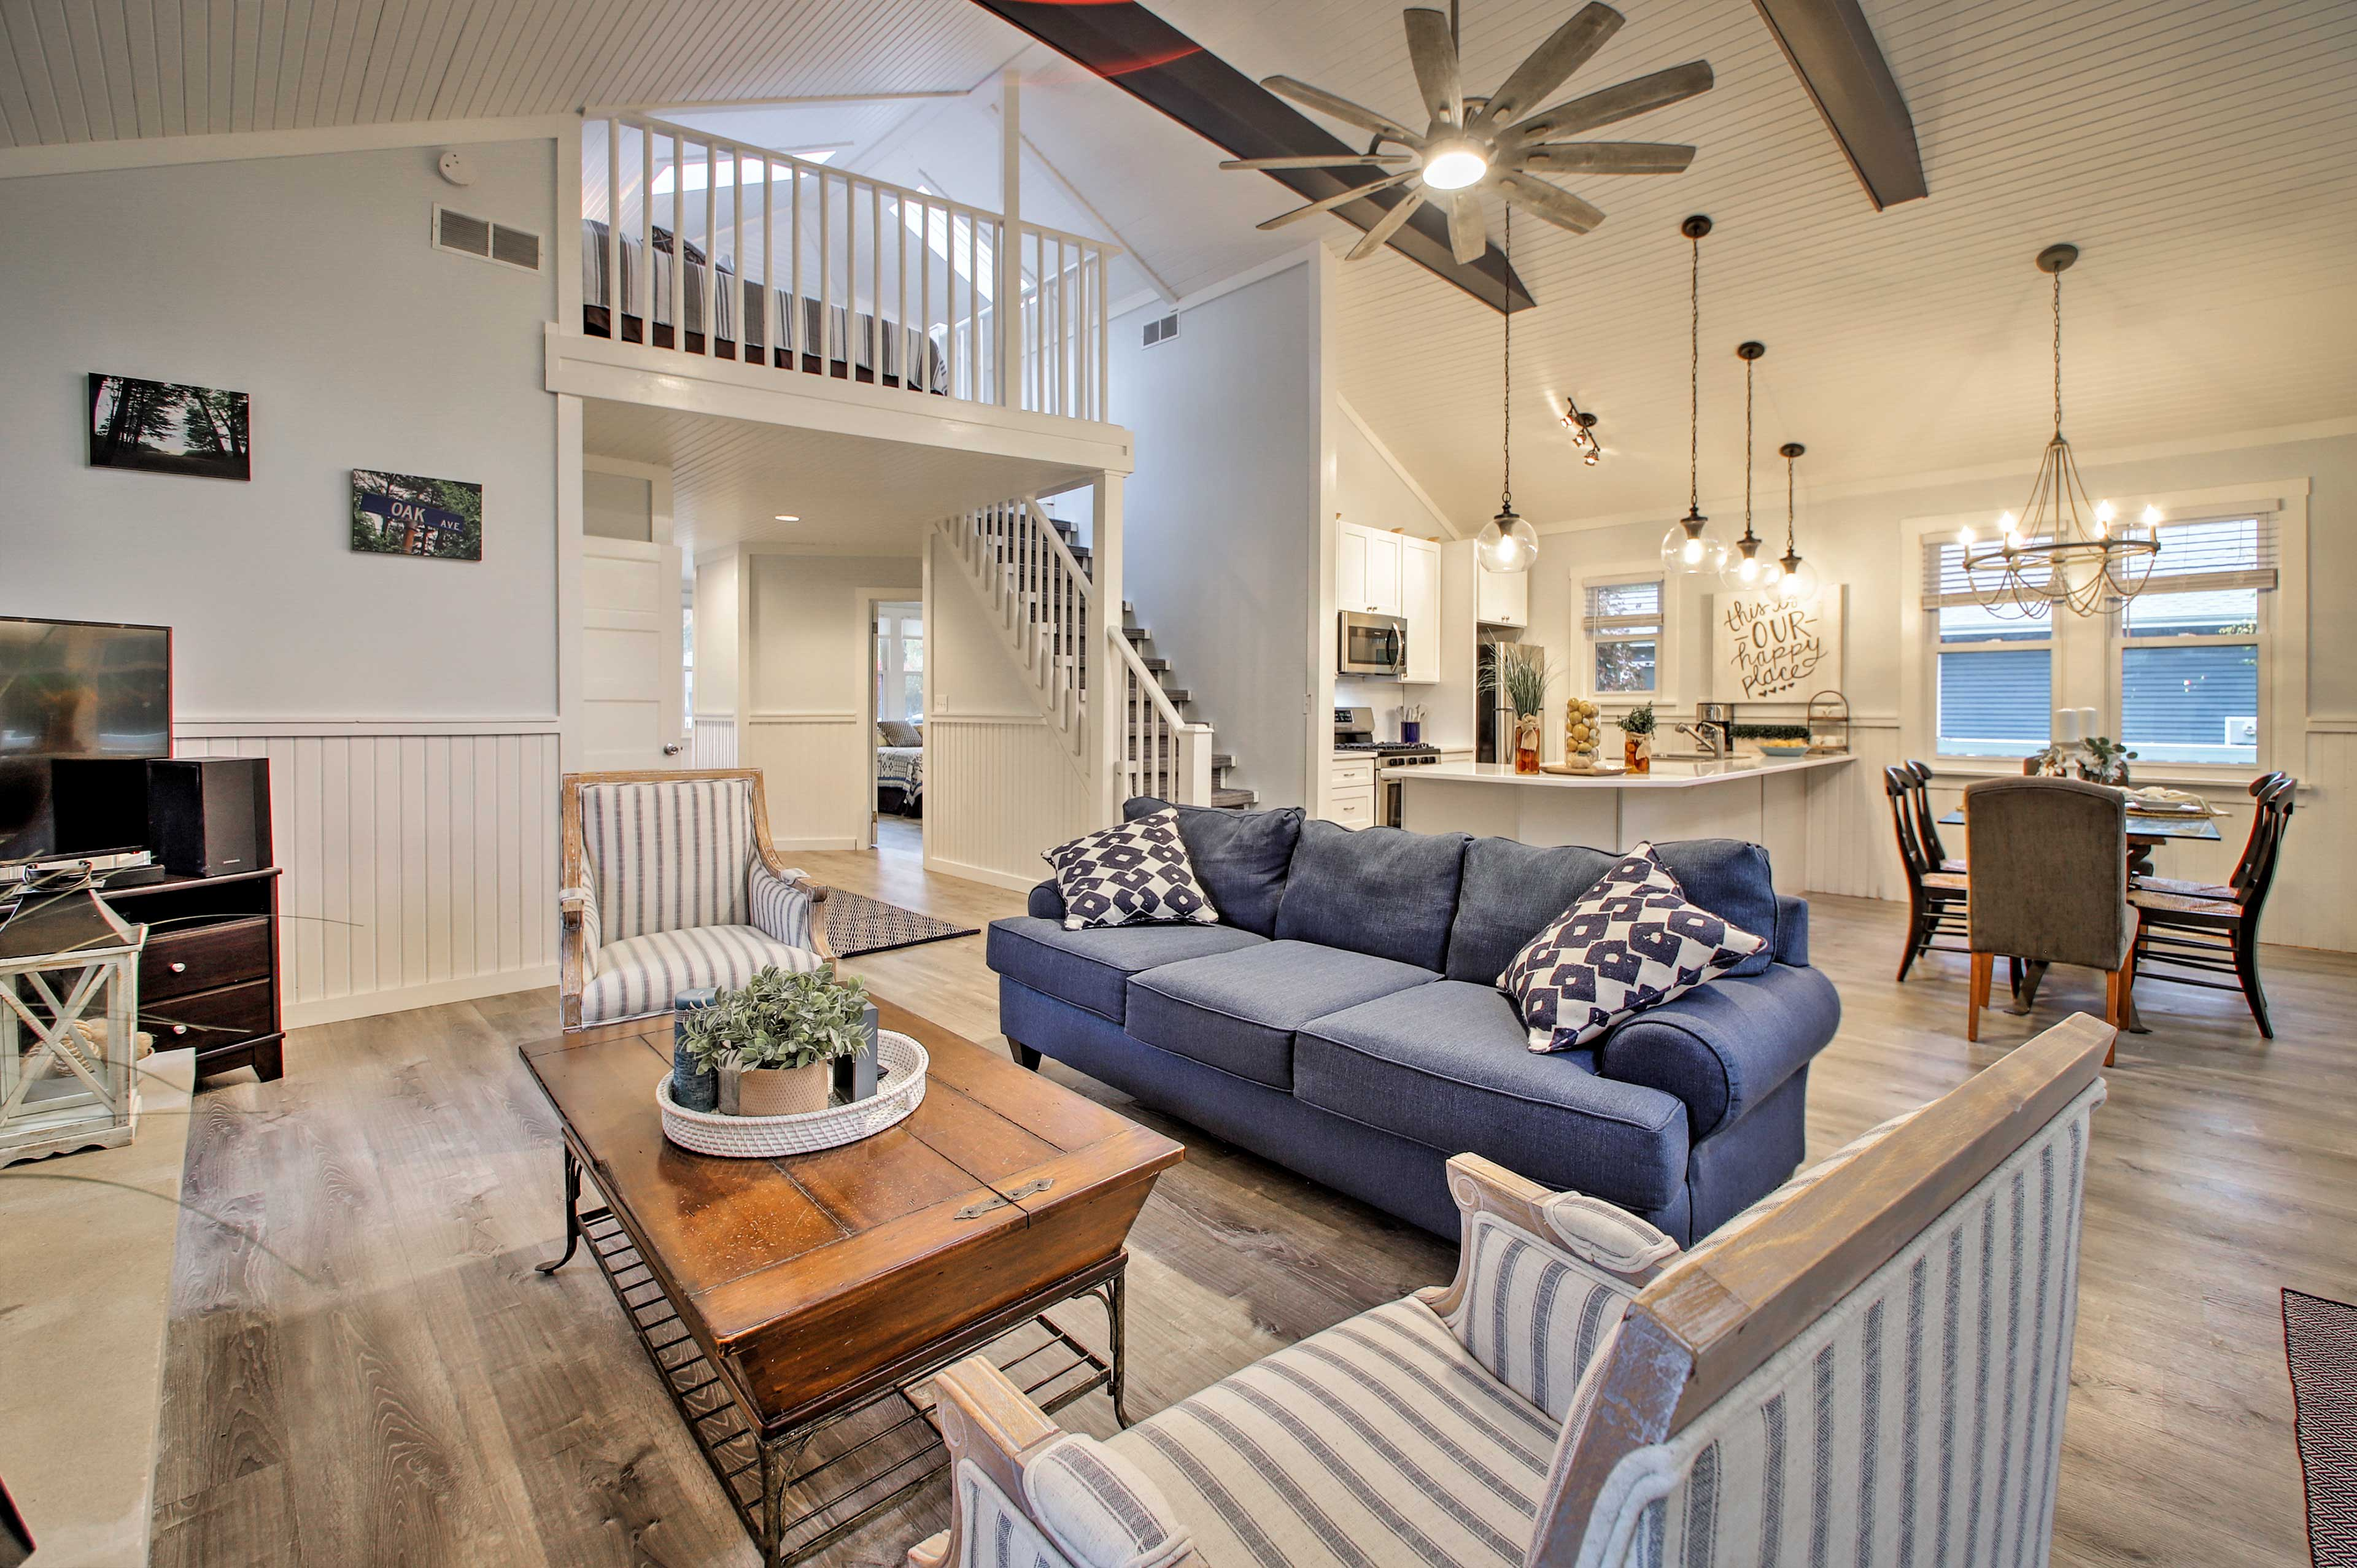 The open layout makes this 1,300-square-foot home seem super spacious.